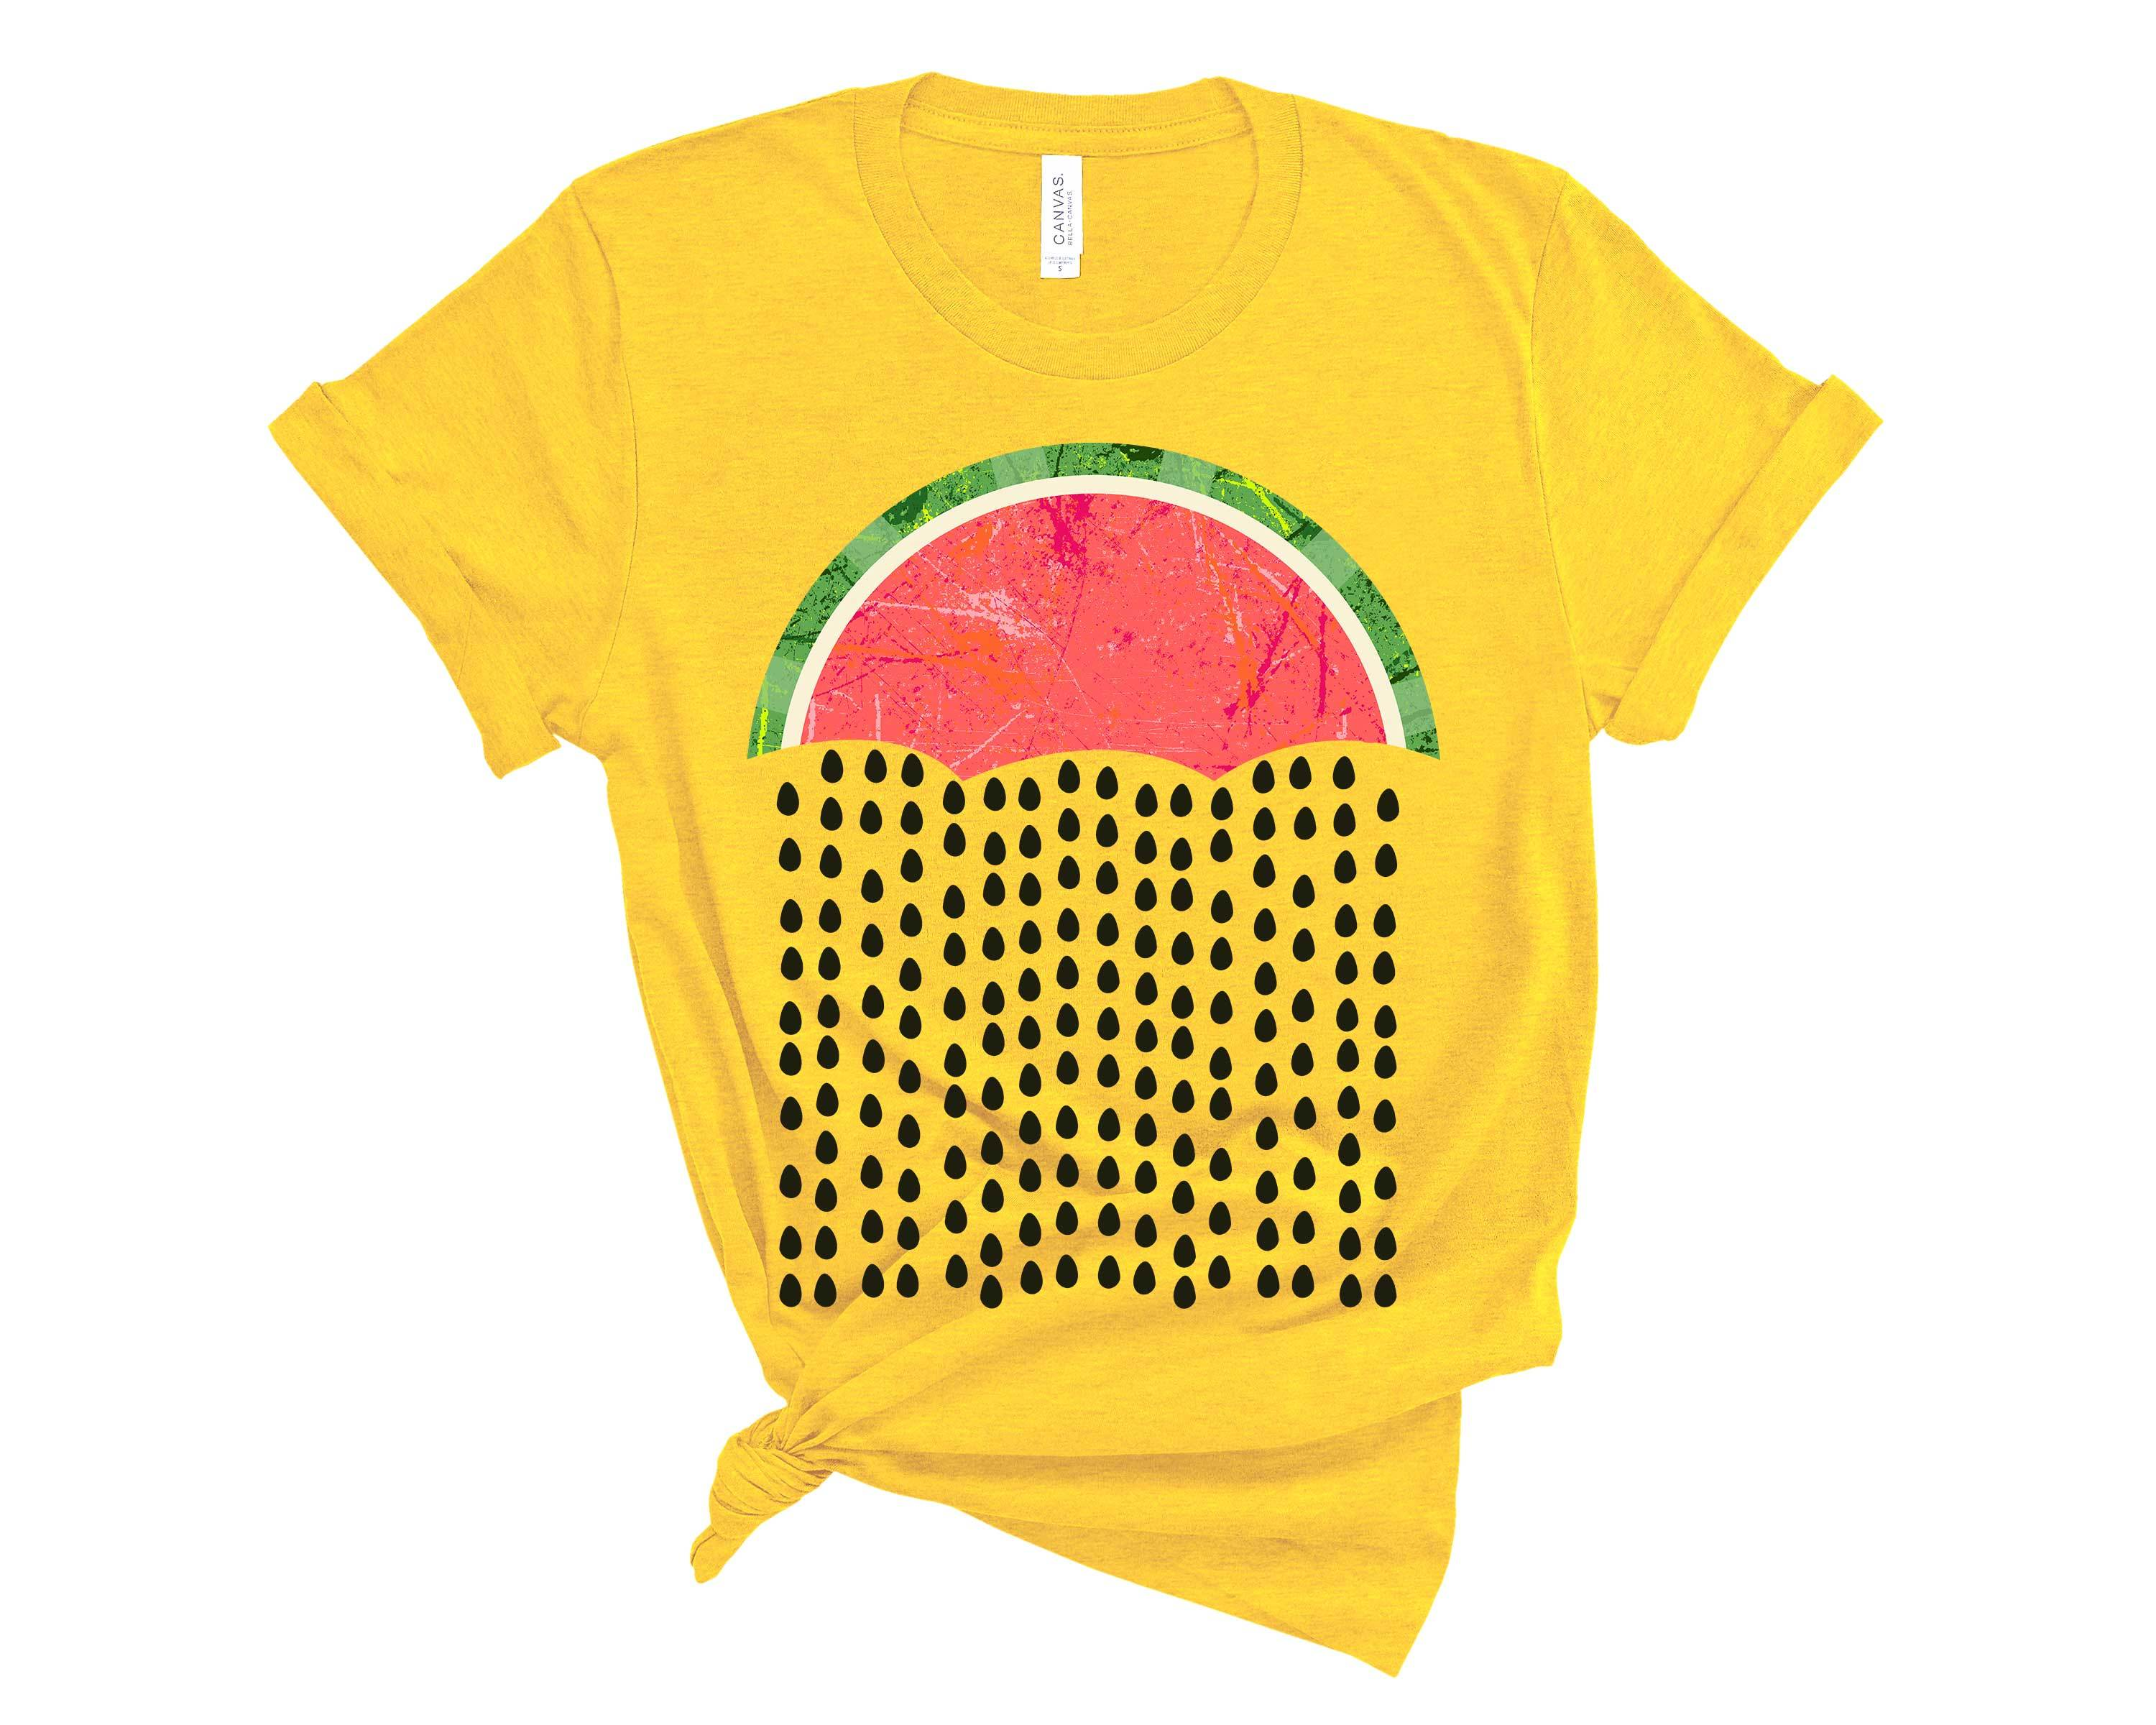 (Unisex BC 3001 Soft Tee) Watermelon Raindrops Umbrella Graphic T-Shirt Tee BOXELS